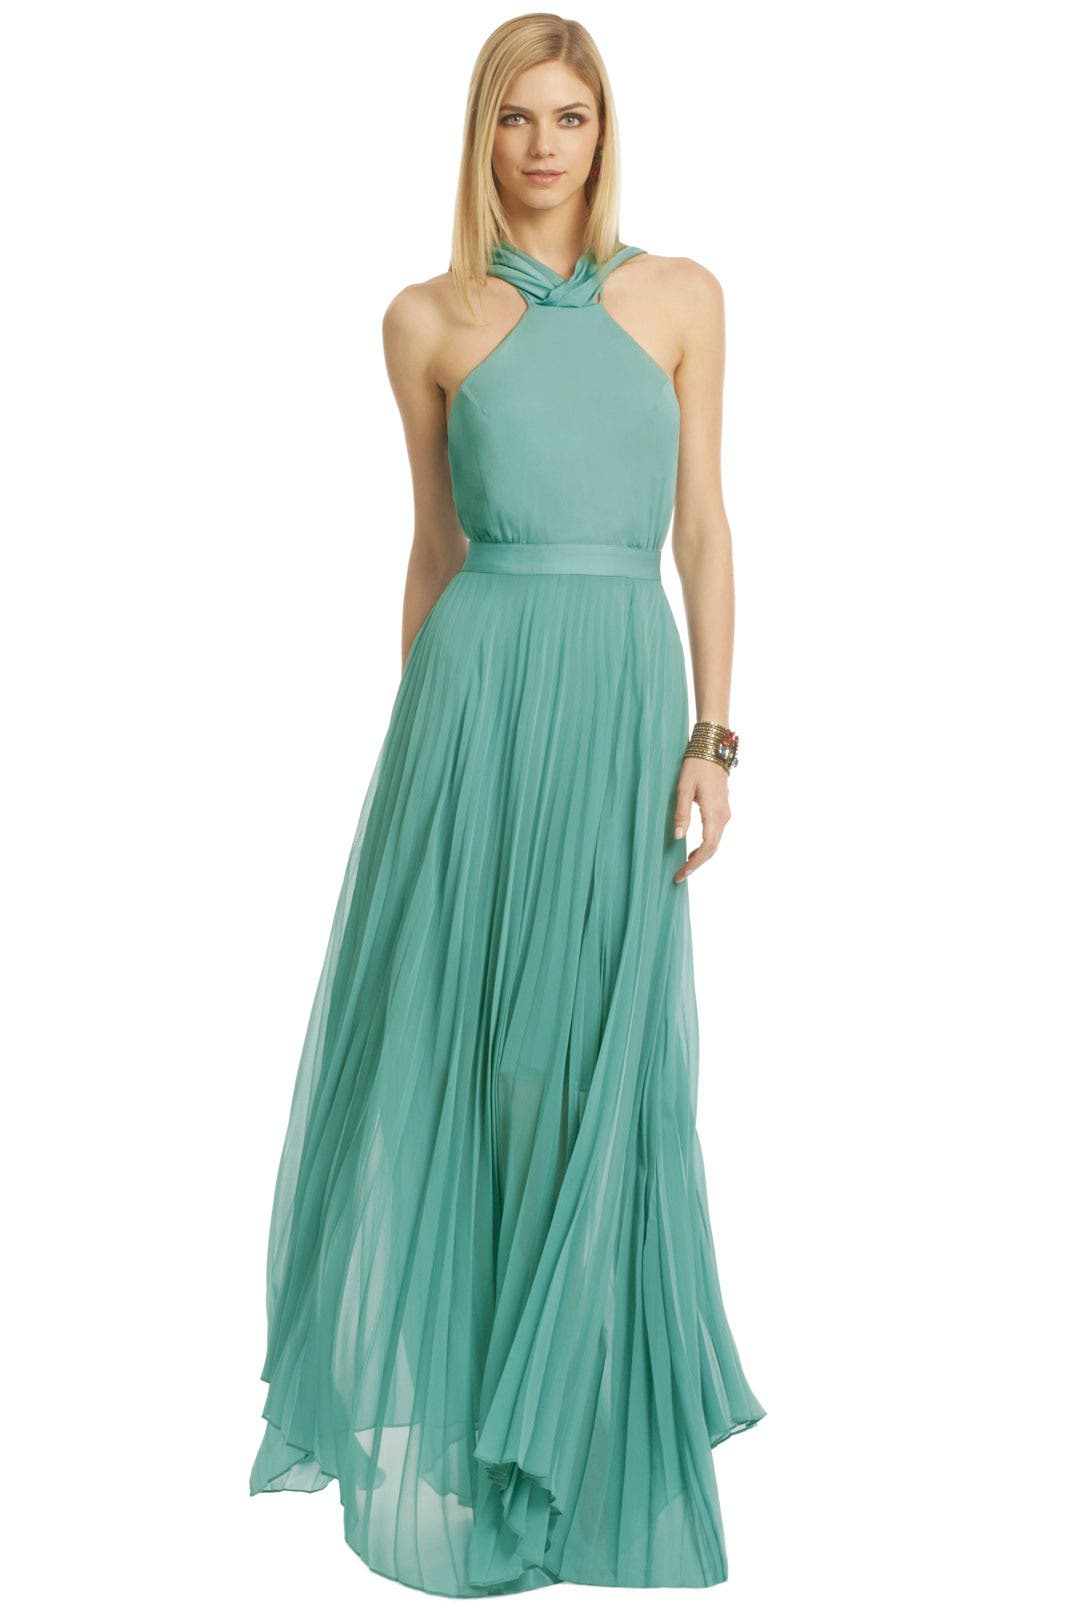 Beach Pebble Gown by Sachin & Babi for $65 | Rent the Runway